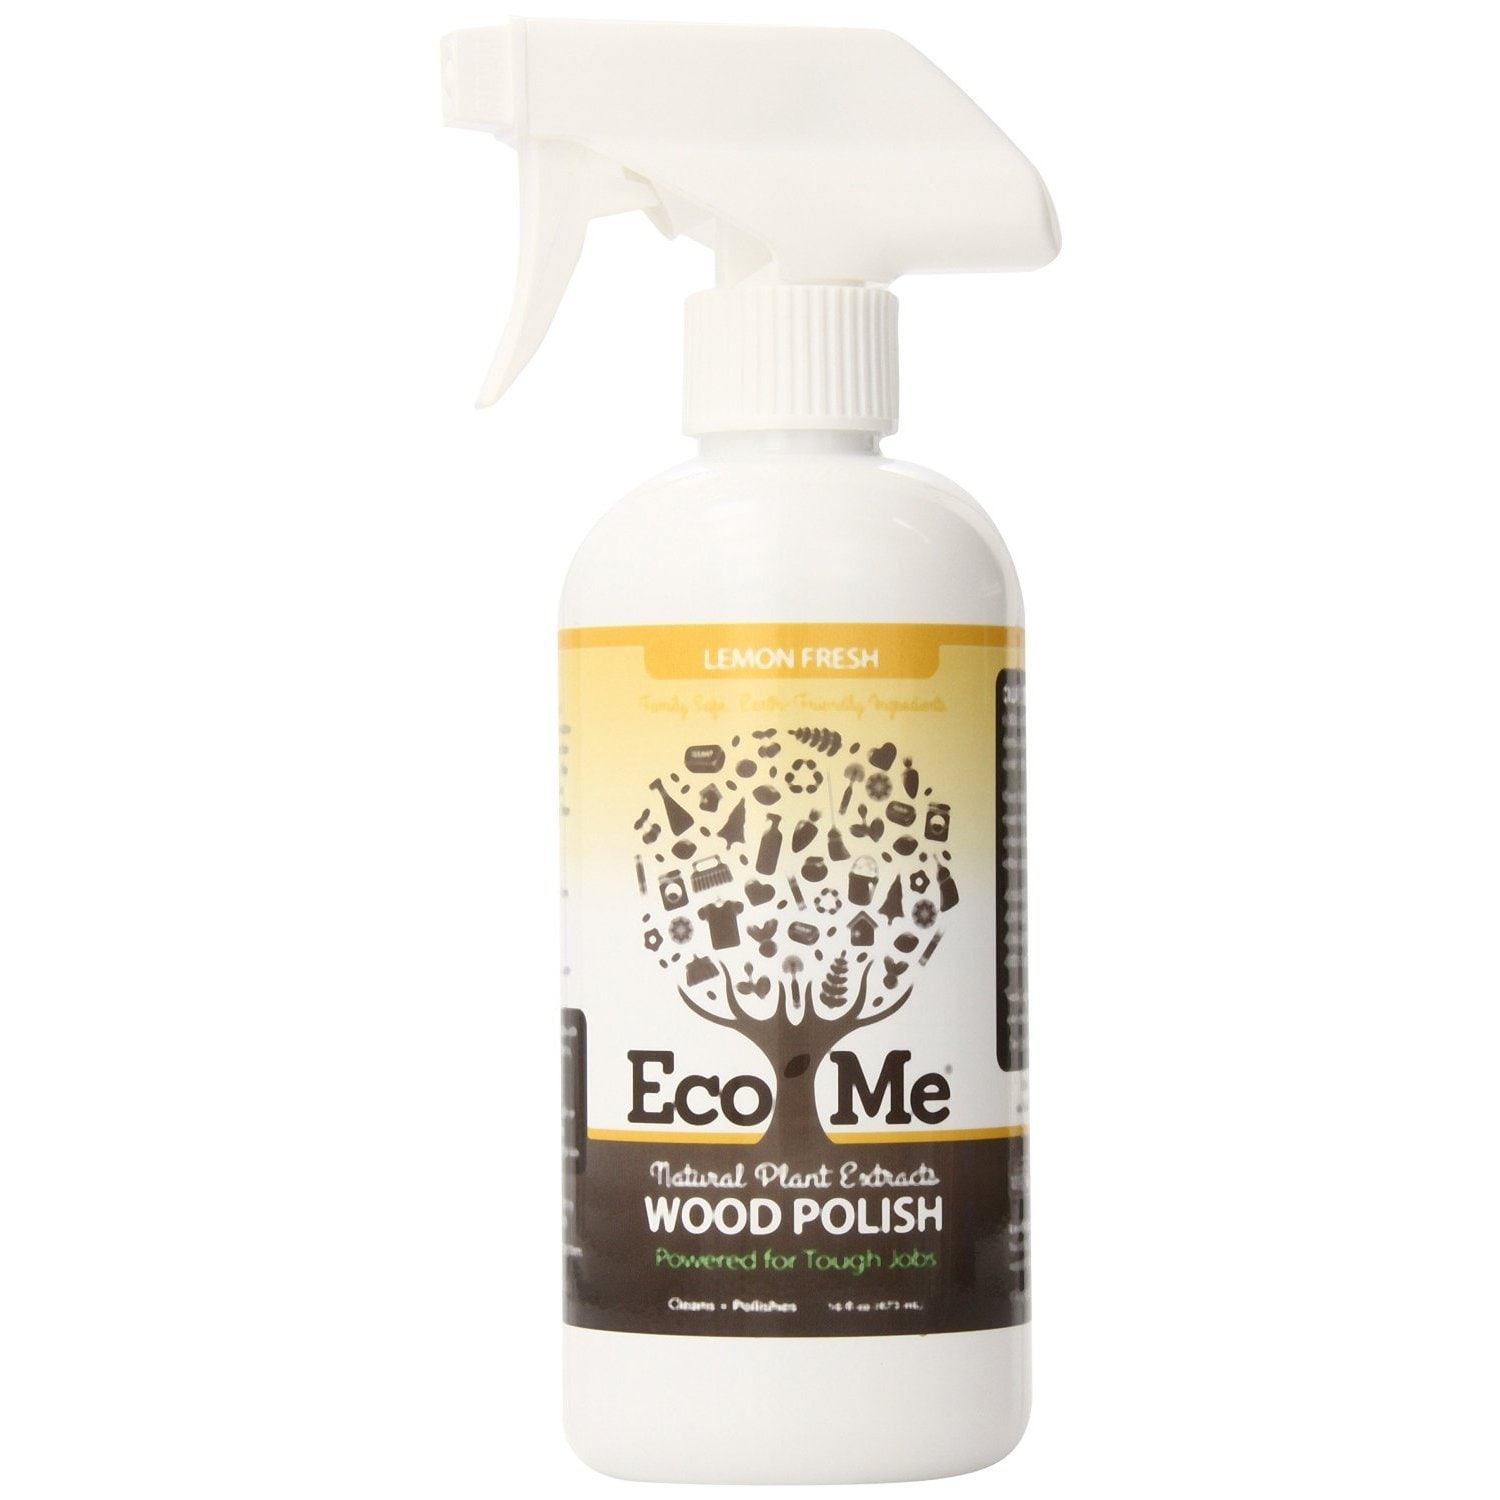 KITTRICH CORP. Eco-Me All Natural Lemon Fresh 16-ounce Wo...